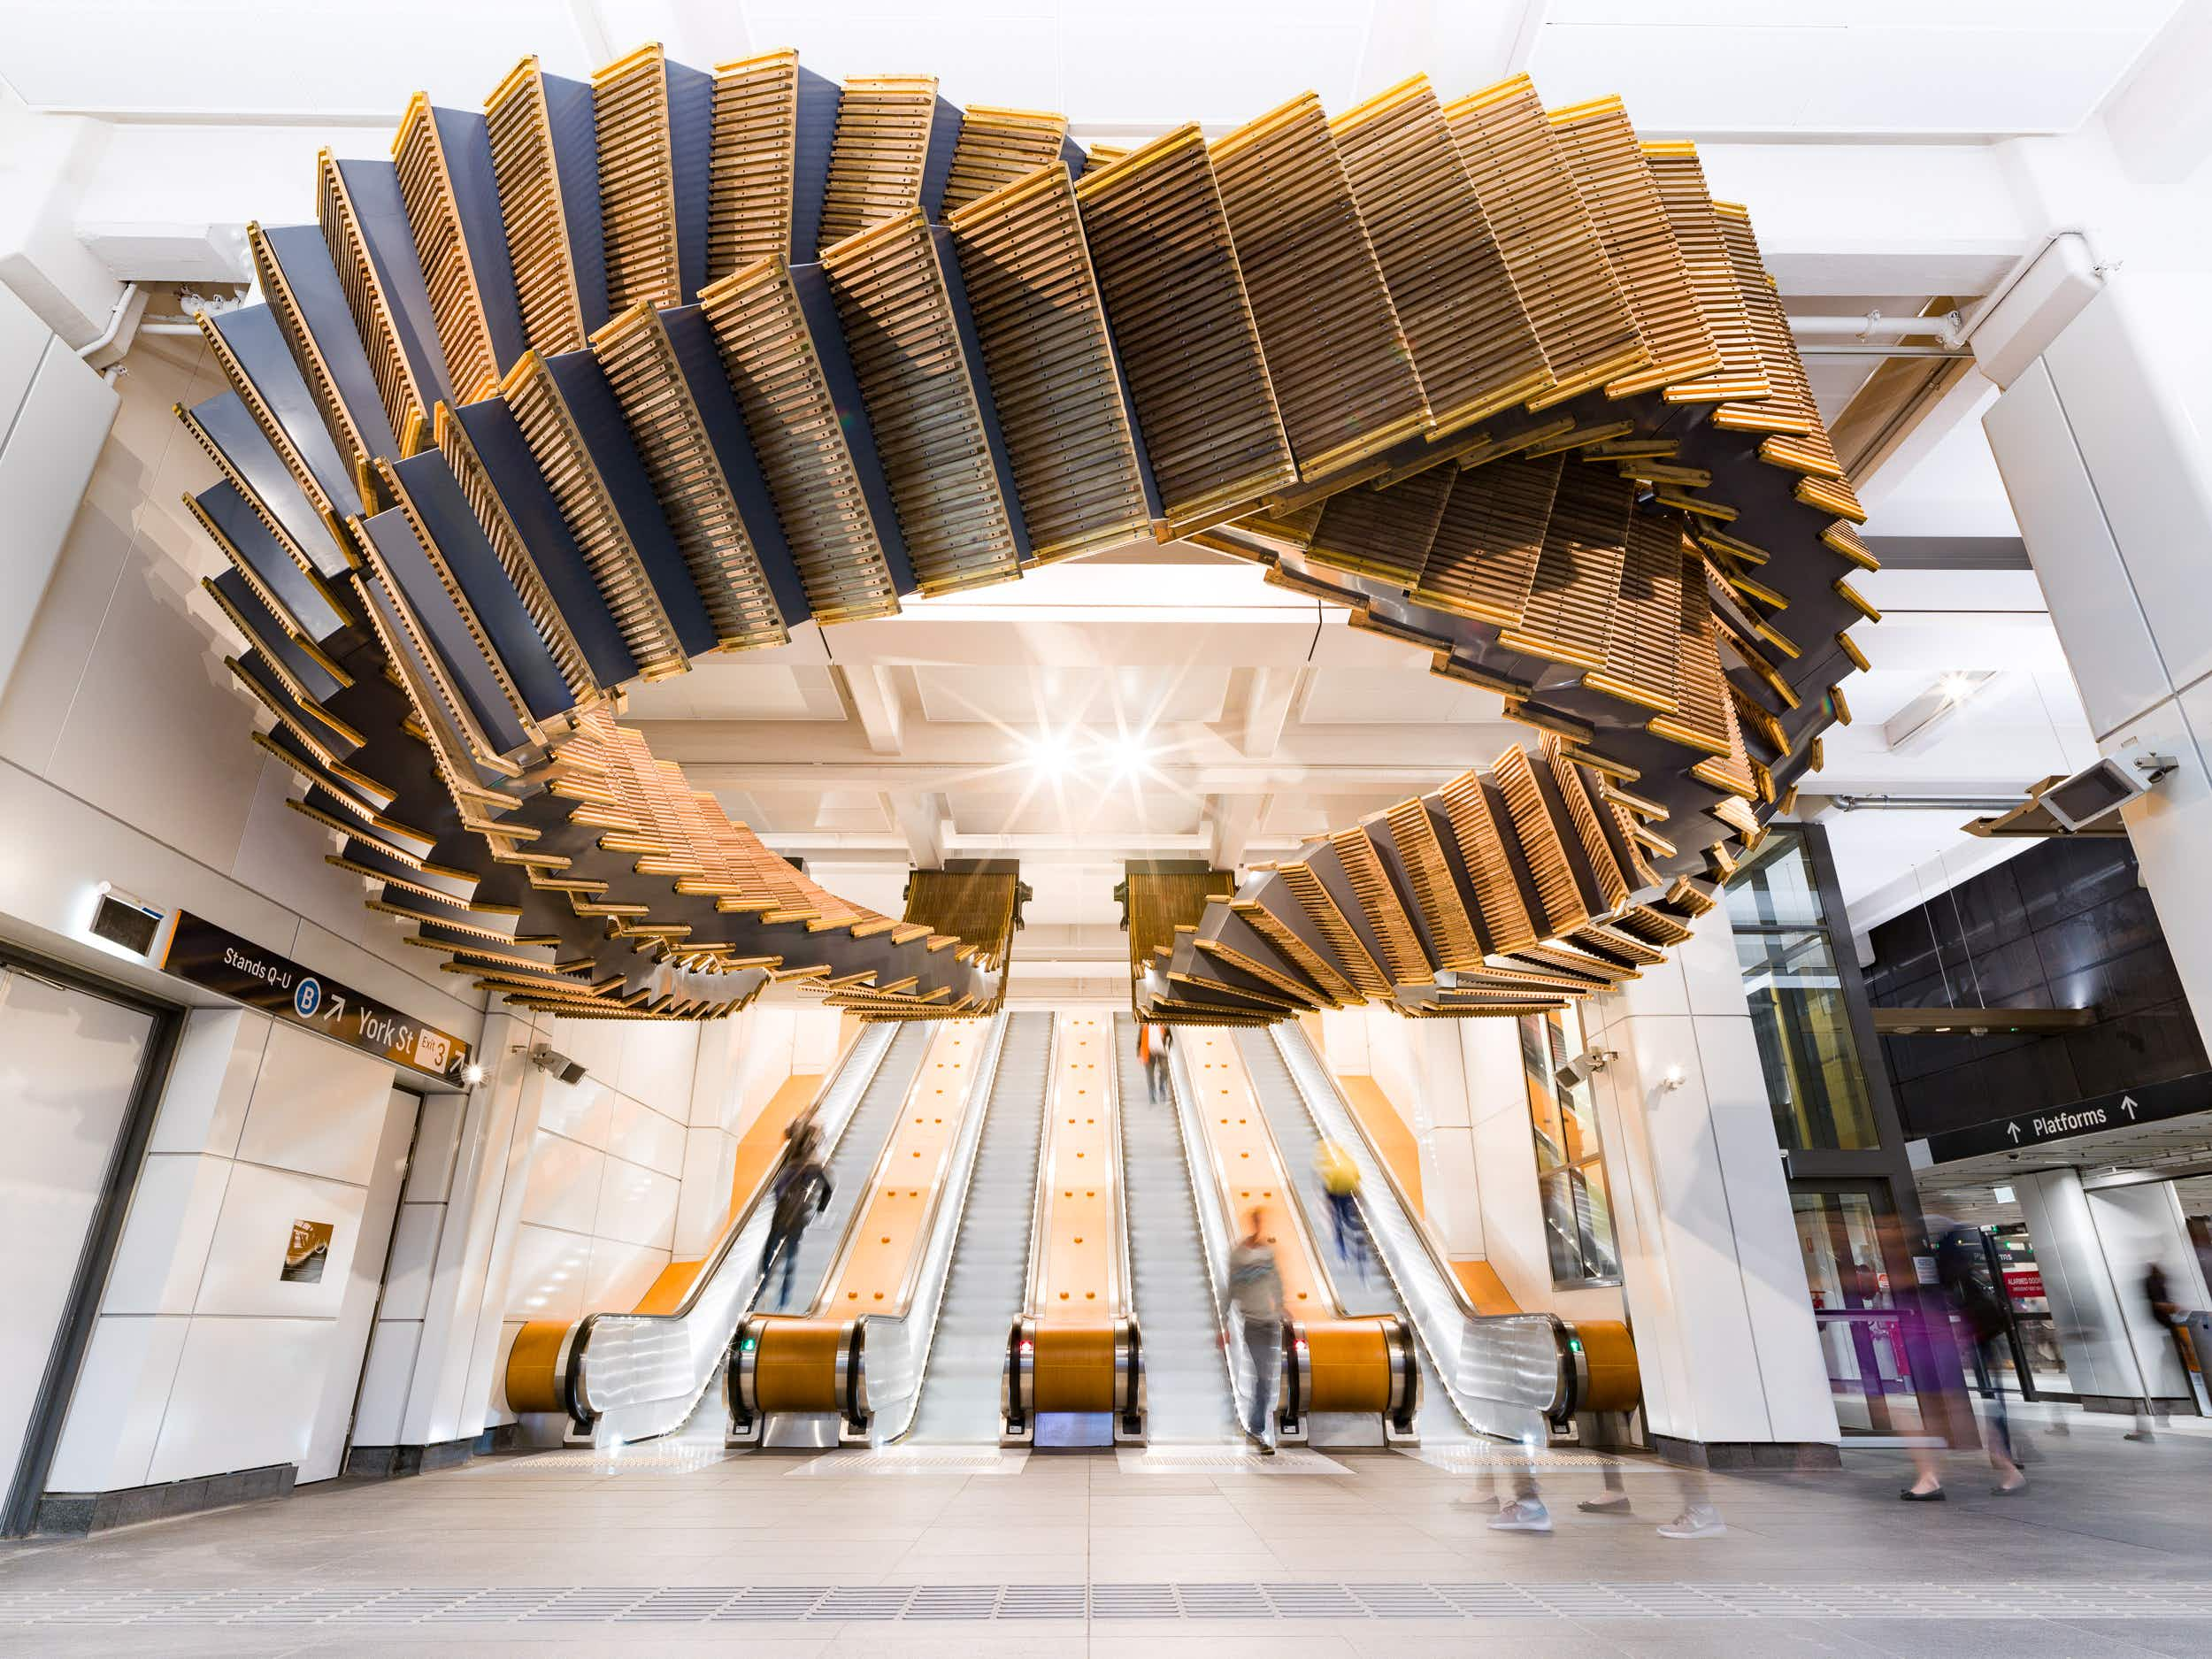 This mesmerising winding staircase floats over commuters' heads in a Sydney station